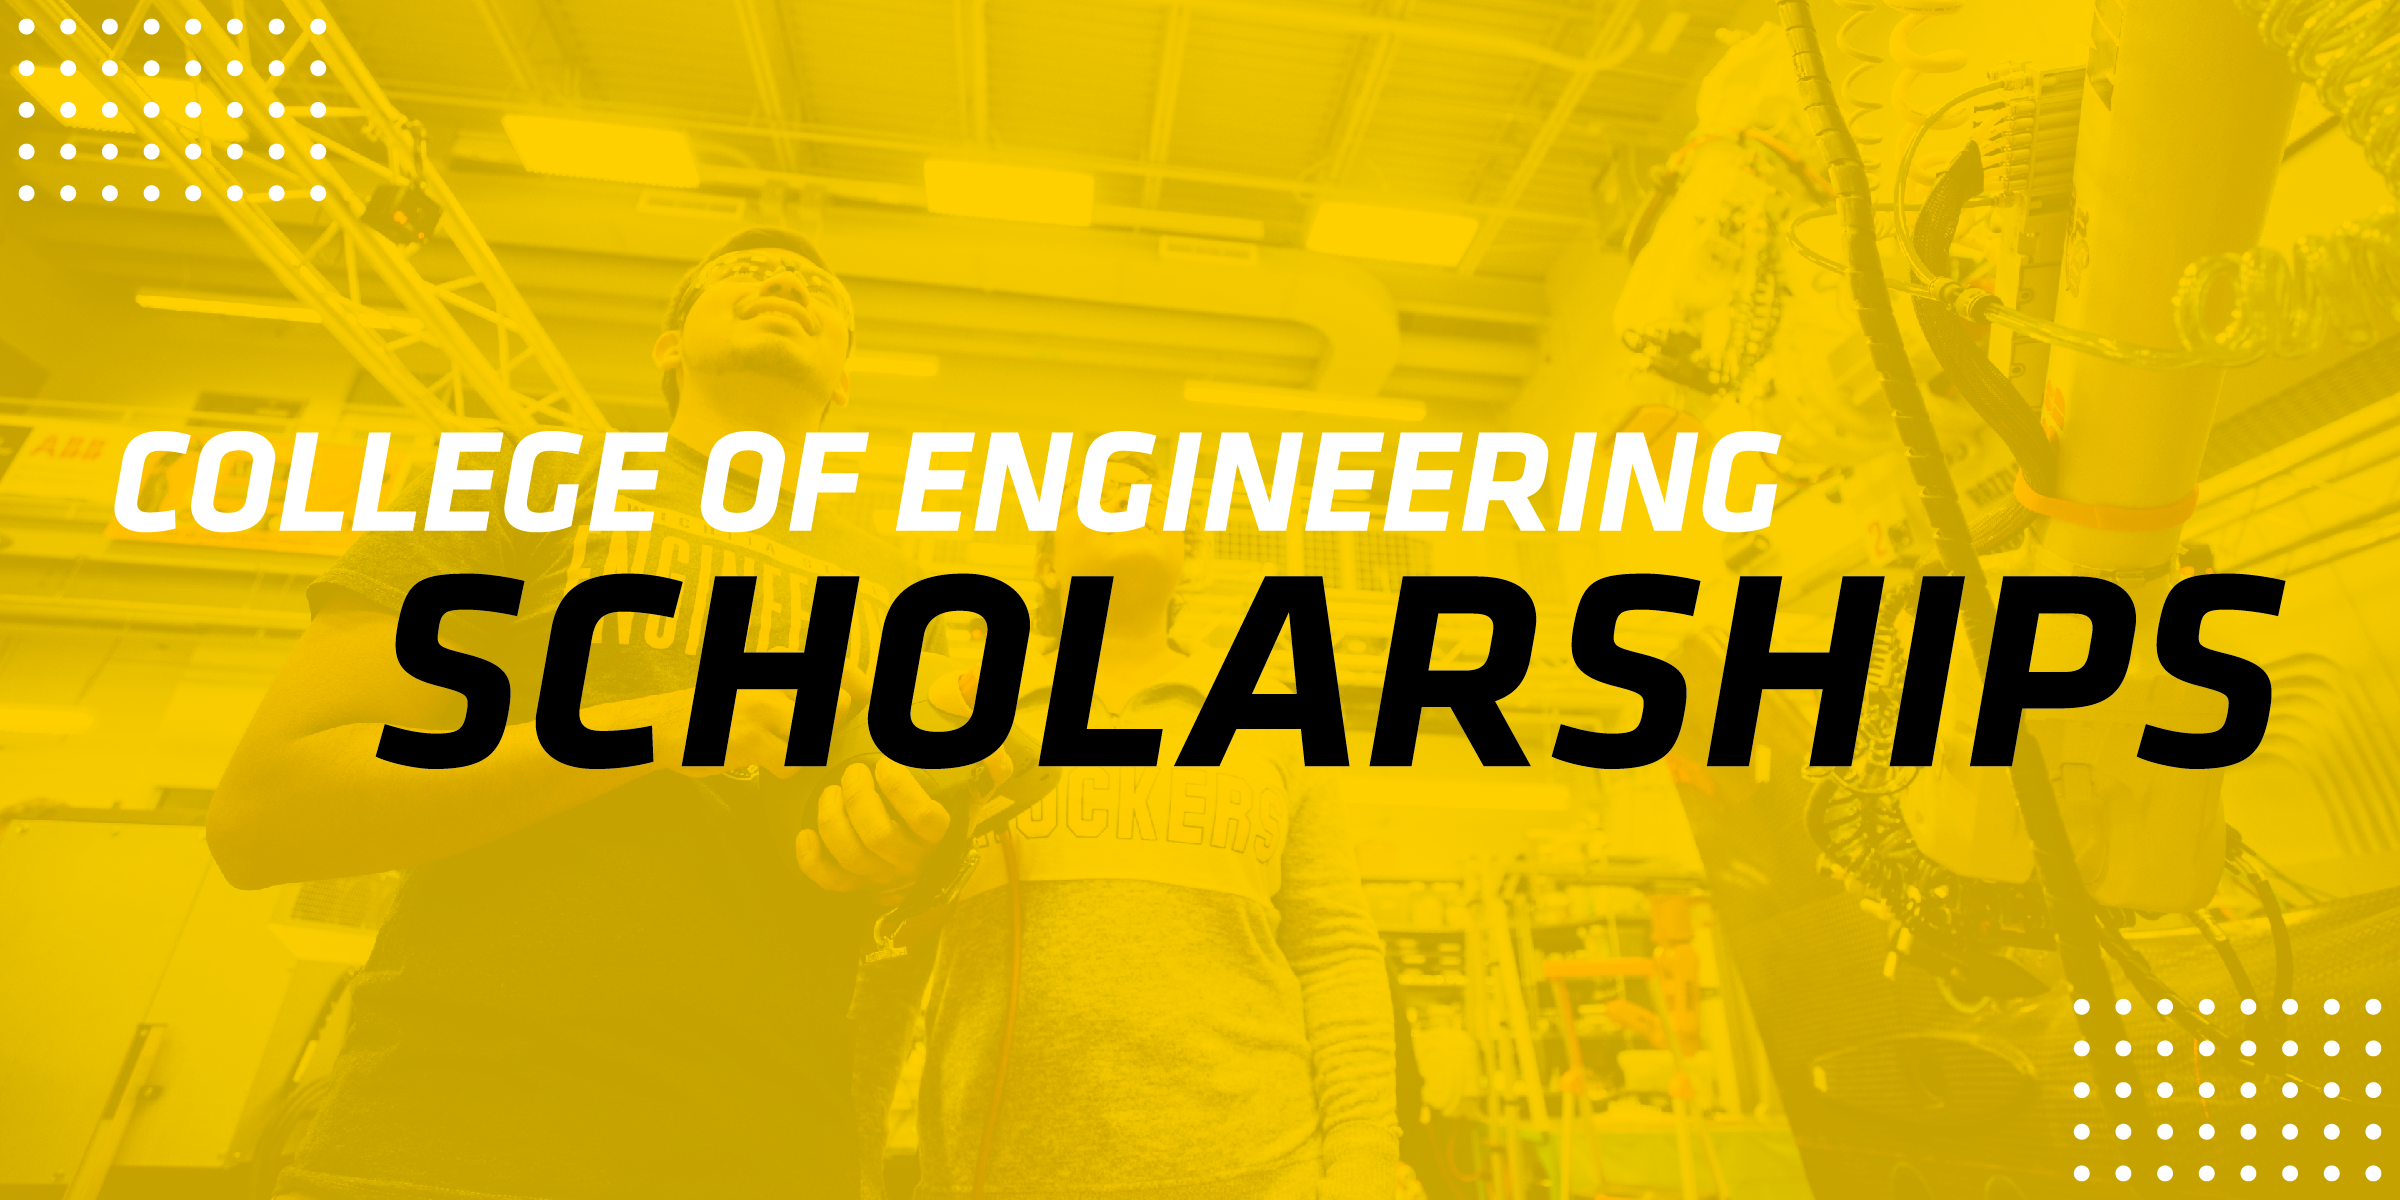 College of Engineering Scholarships